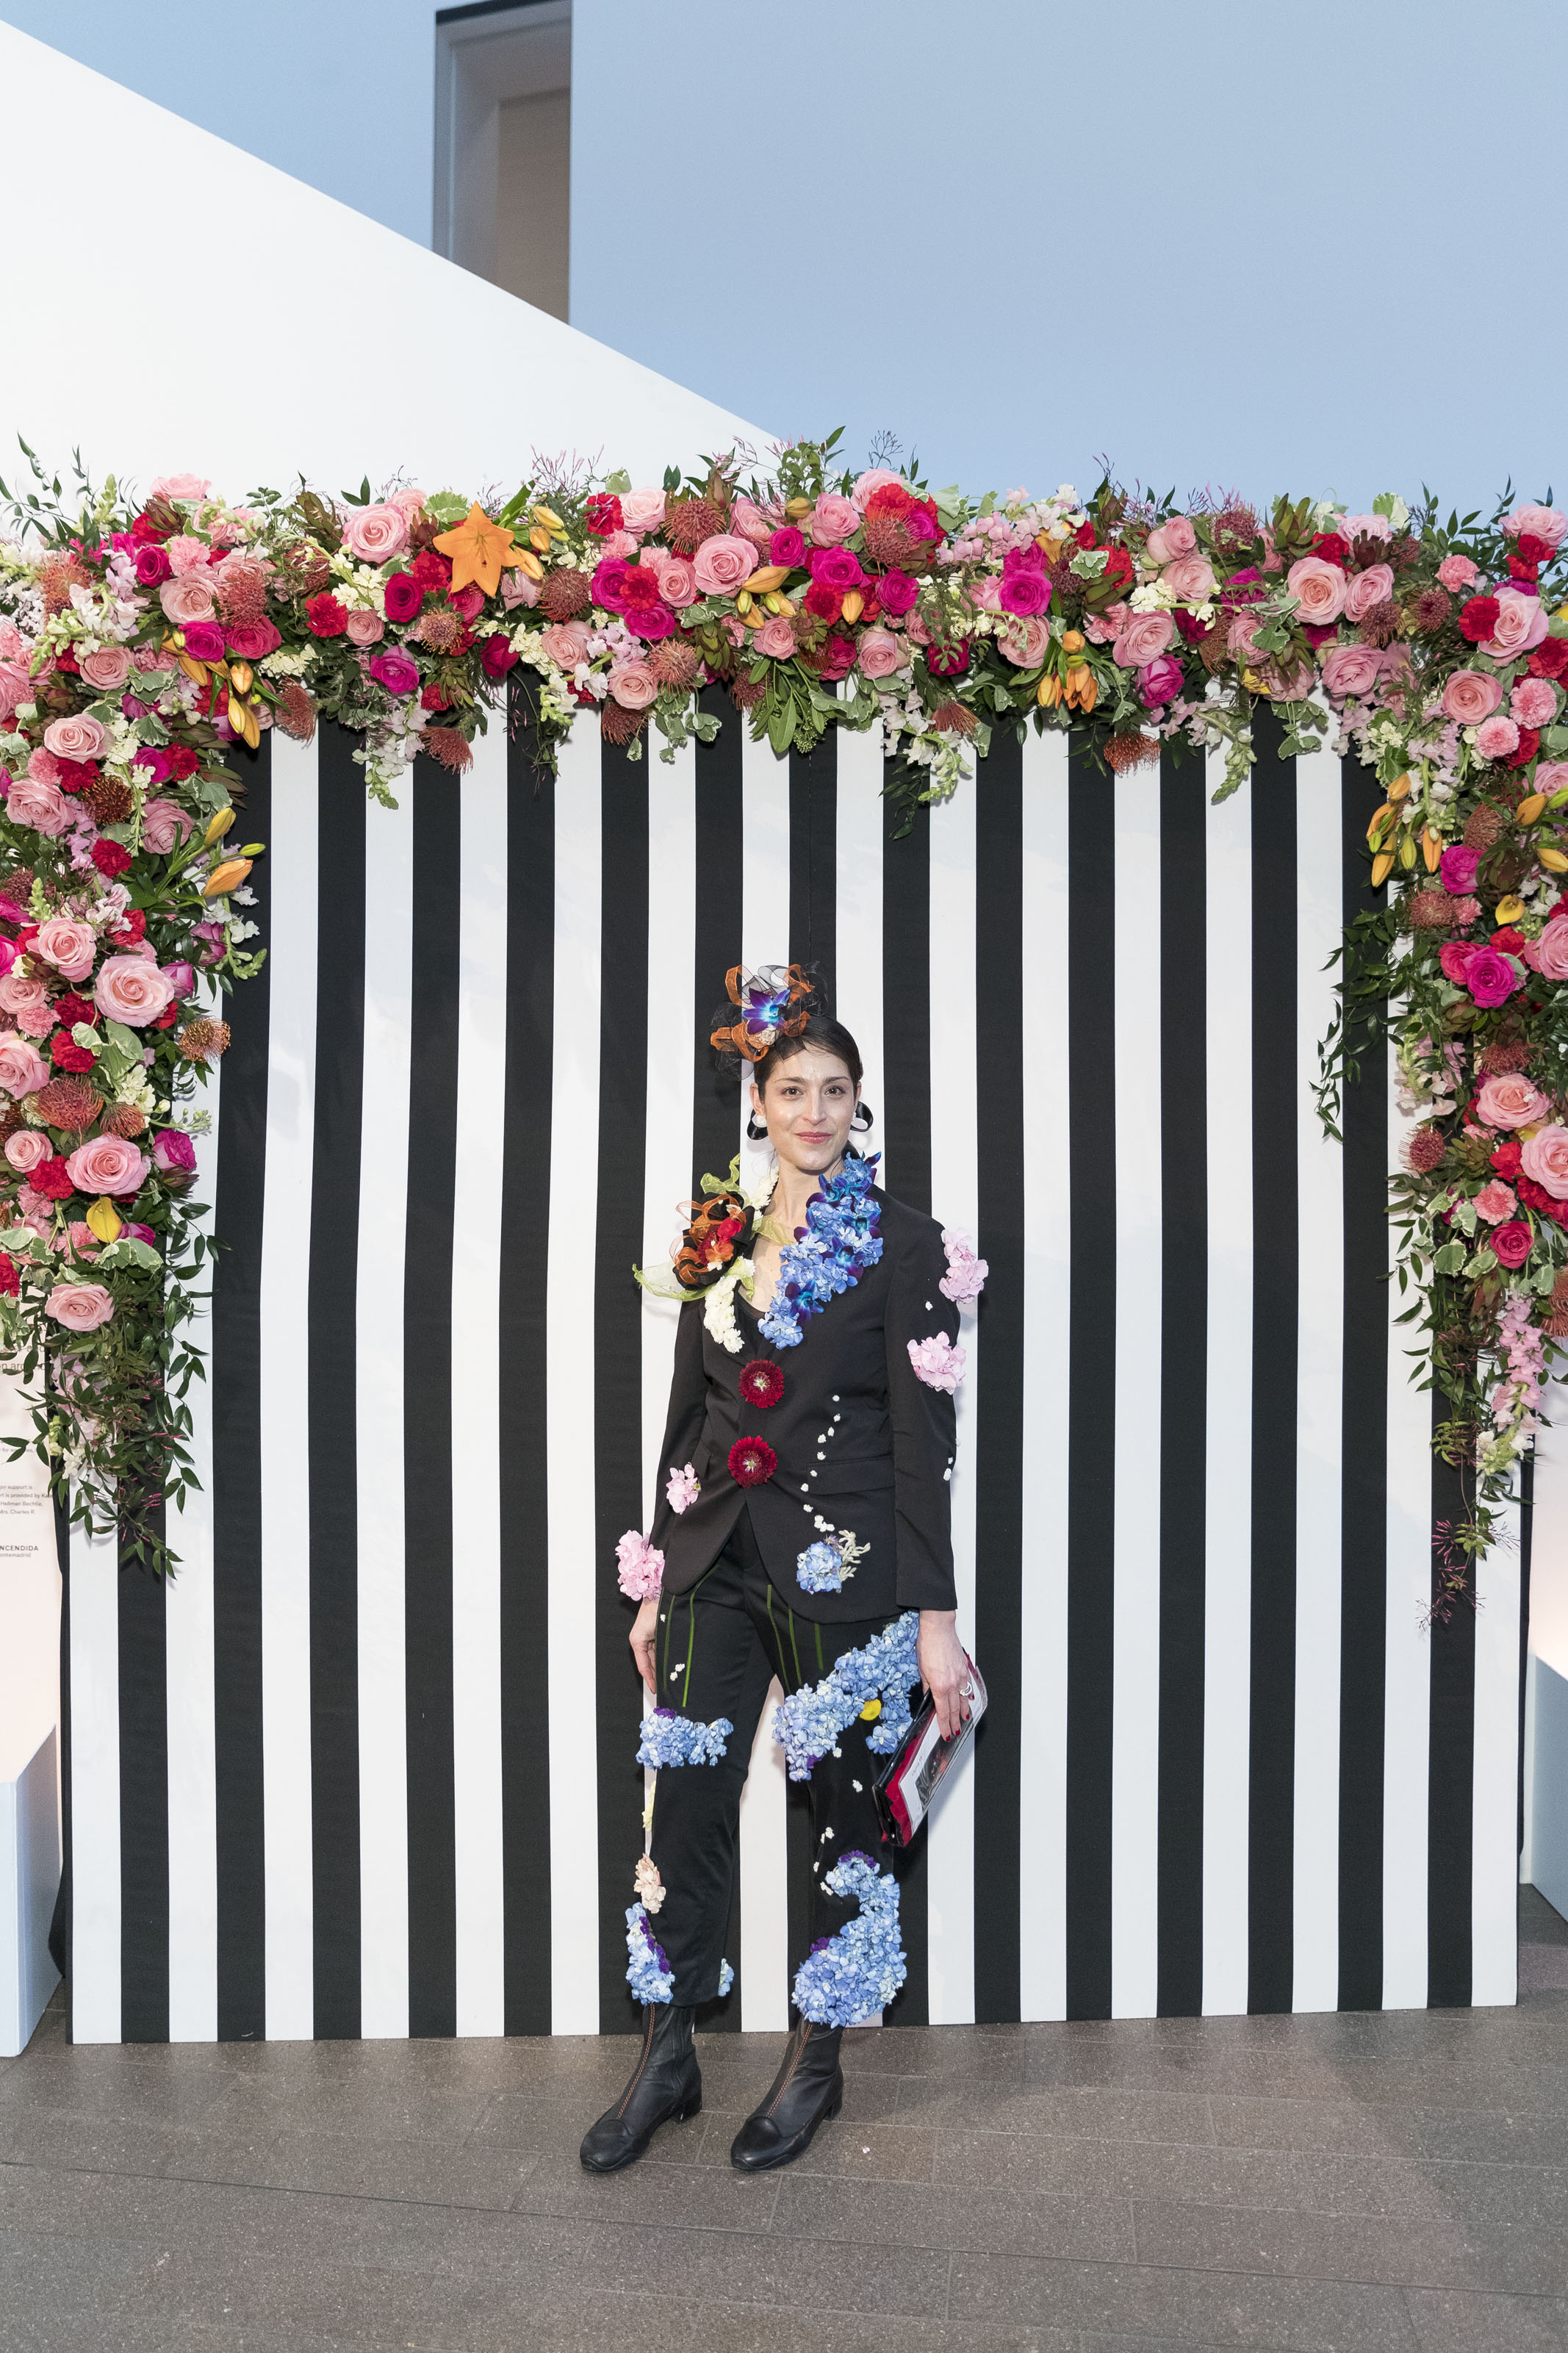 Shari Wilk created this floral pantsuit modeled by Betsey Herczeg-Konecney at the Bouquets to Art Gala on March 12, 2018 at de Young Museum in San Francisco, CA. Photo by Drew Altizer/Courtesy of the Fine Arts Museum of San Francisco.